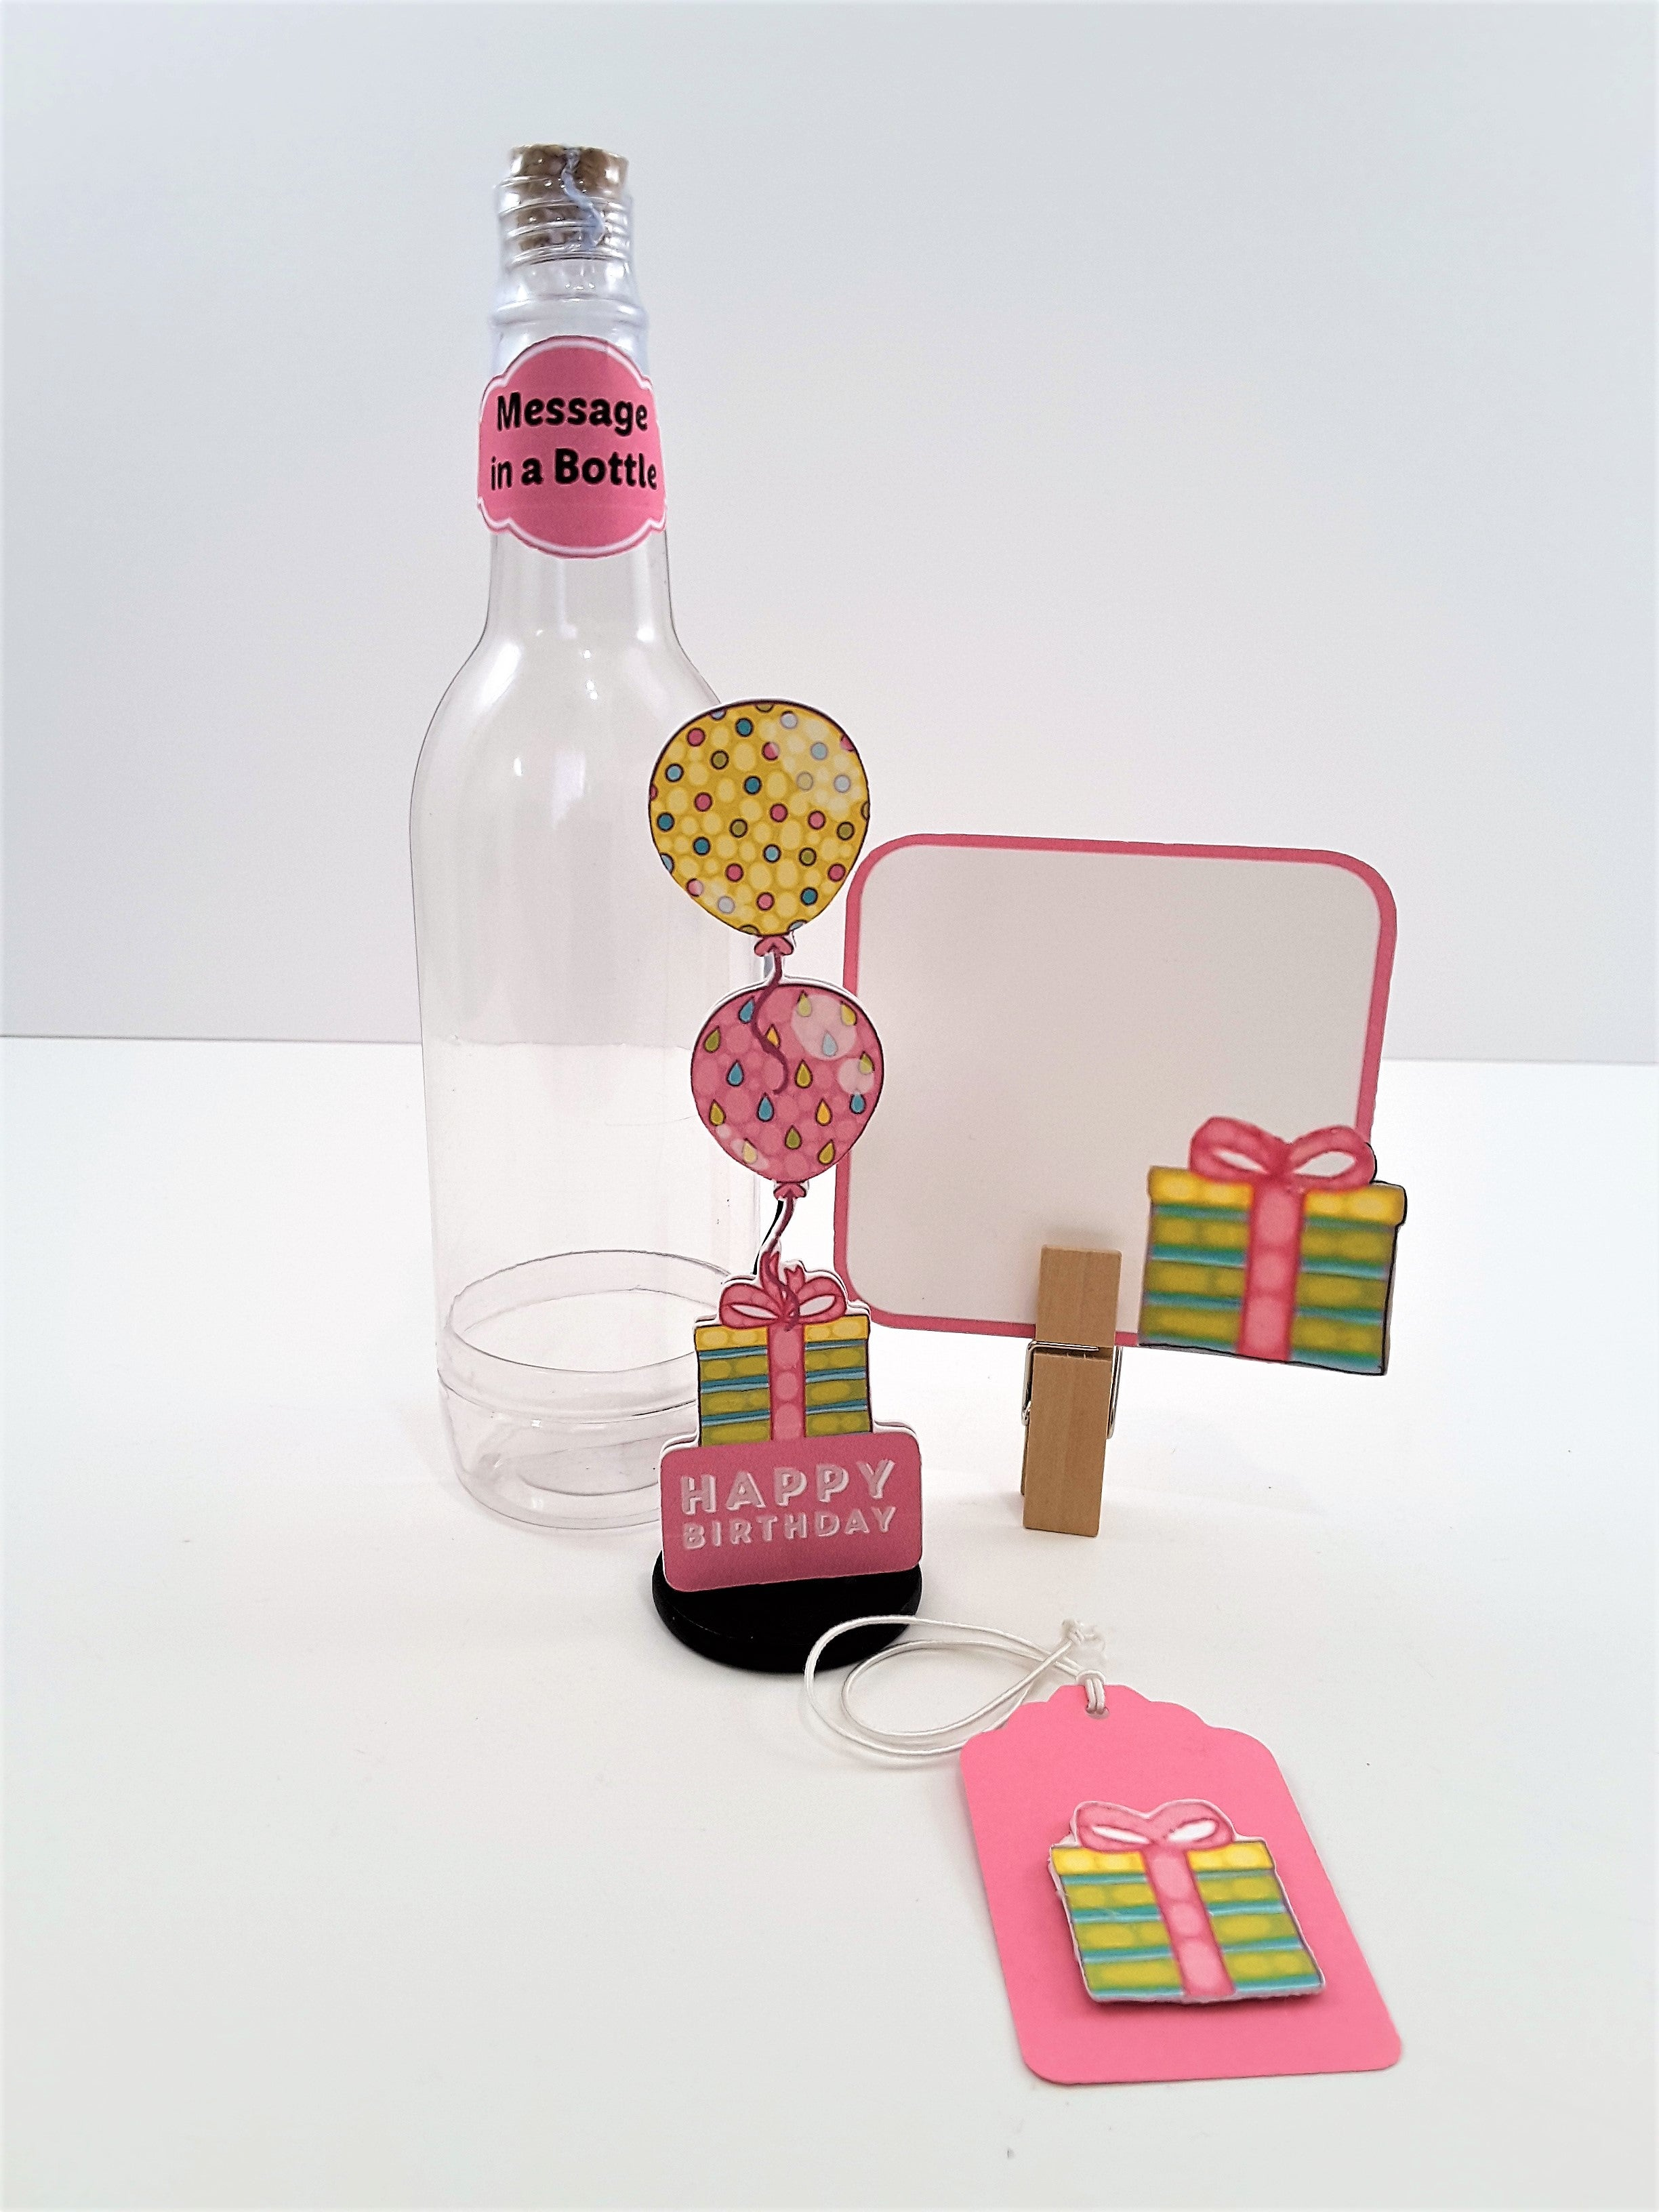 MESSAGE IN A BOTTLE 3D BIRTHDAY BALLOONS GREETING CARD